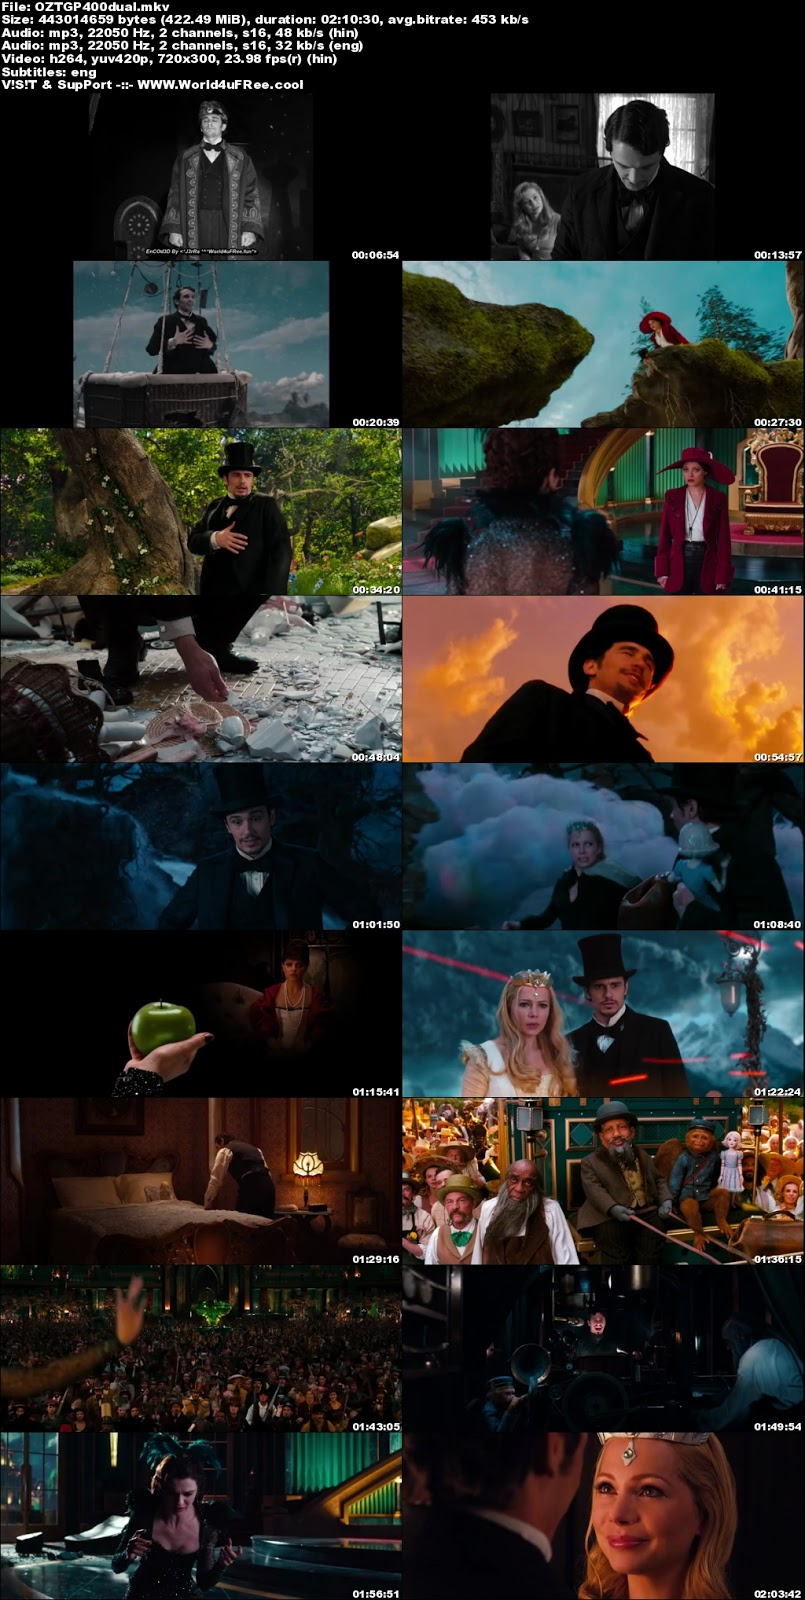 Oz the Great and Powerful 2013 Dual Audio BRRip 480p 400Mb x264 classified-ads.expert, hollywood movie Arthur and the Invisibles 2006 hindi dubbed dual audio hindi english languages original audio 720p BRRip hdrip free download 700mb movies download or watch online at classified-ads.expert